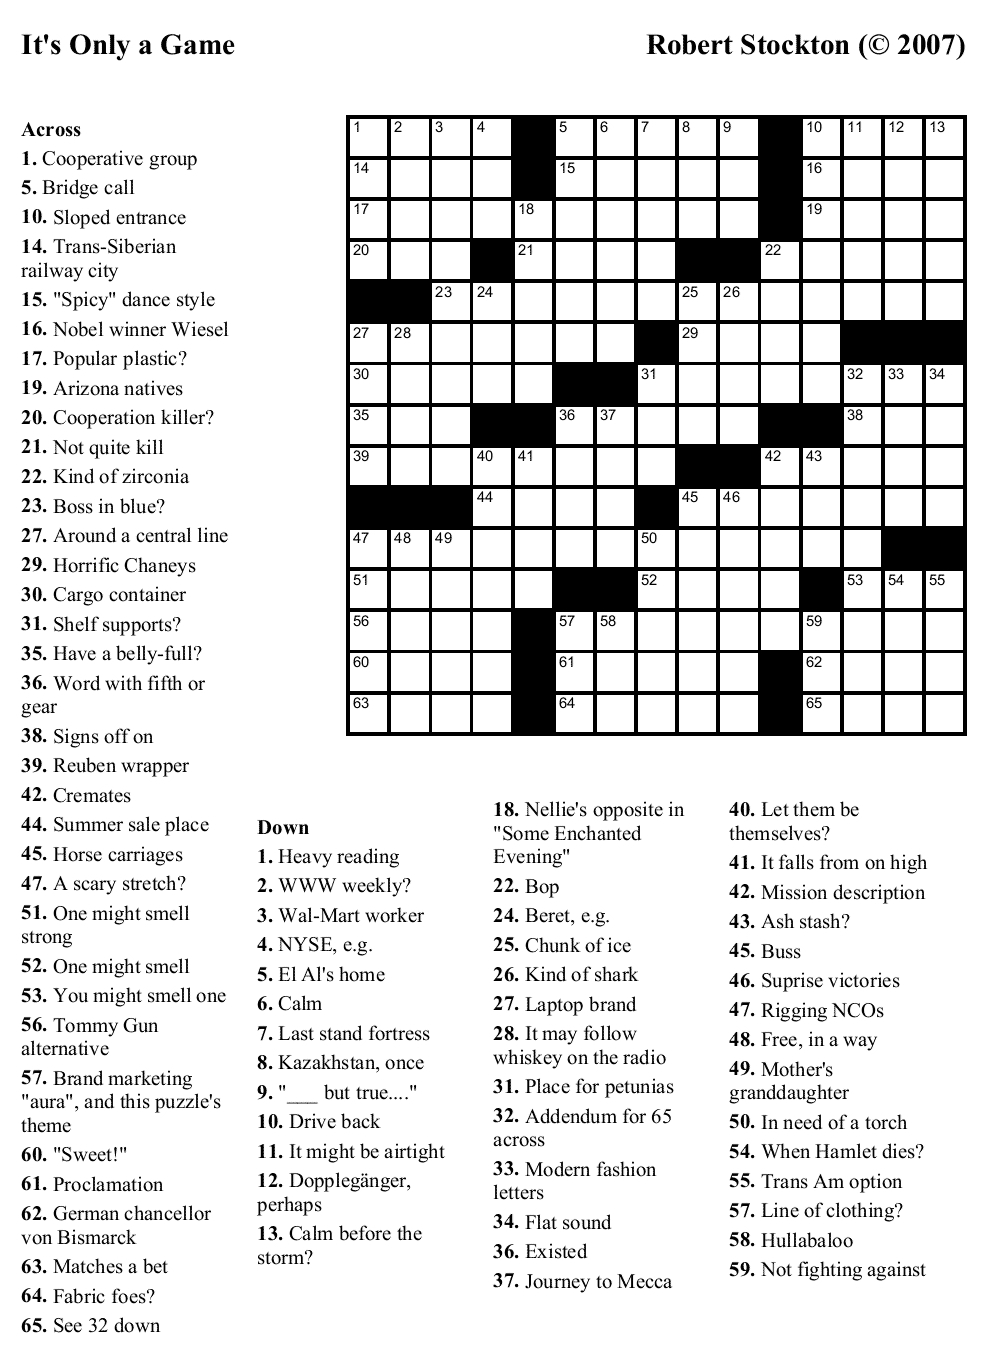 Crossword Puzzle Maker And Printable Crosswords Onlyagame - Free - Make Your Own Crossword Puzzle Free Printable With Answer Key